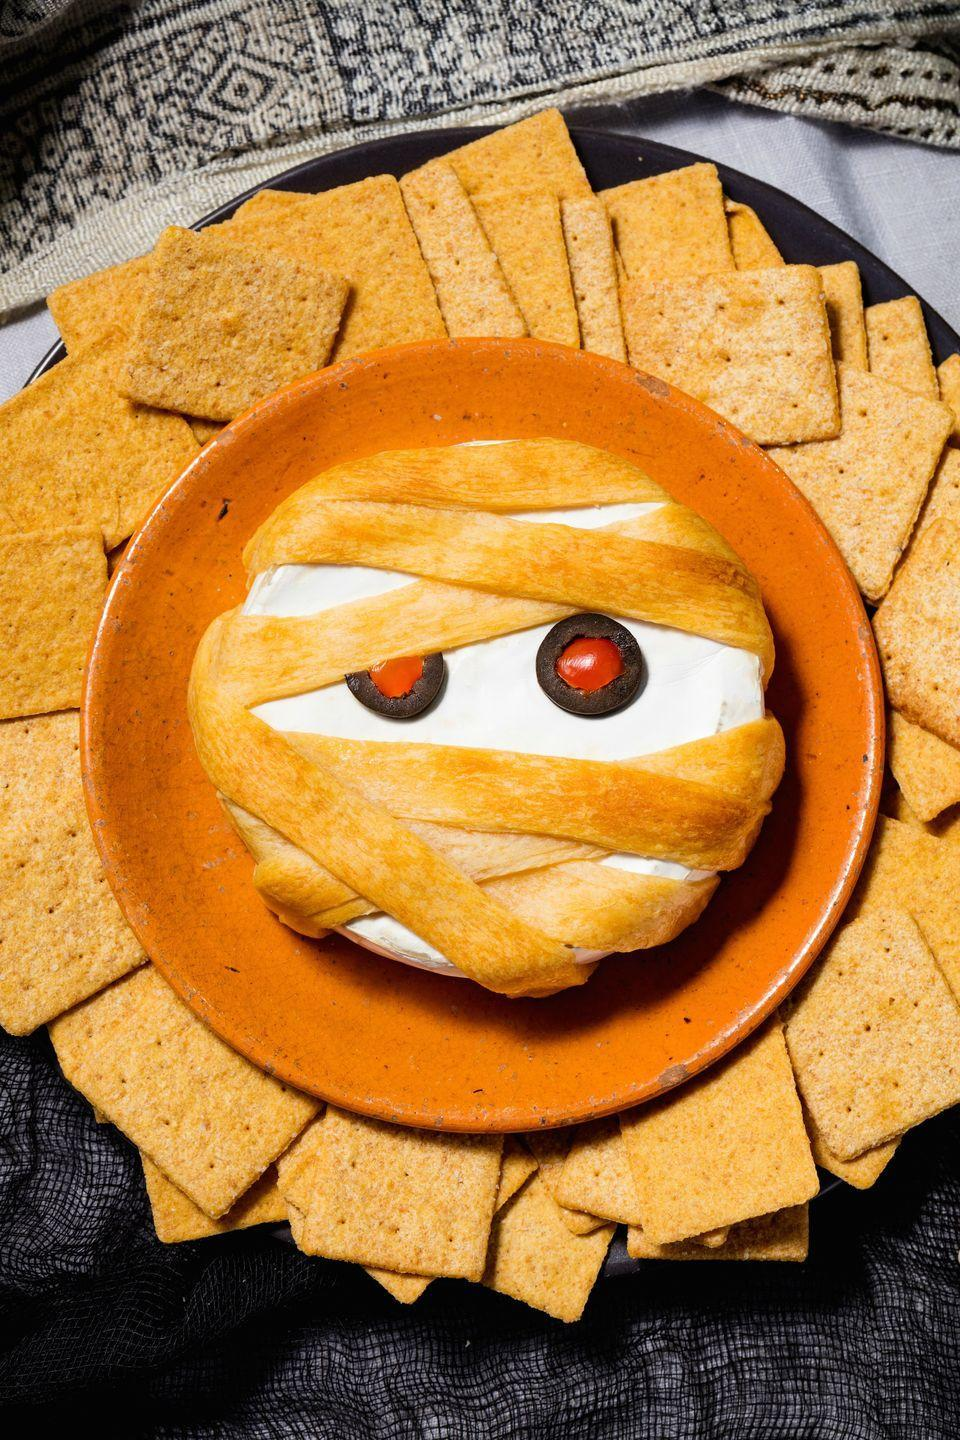 "<p>Thanks to puff pastry, your basic baked brie becomes a totally spooky Halloween appetizer.</p><p>Get the recipe from <a href=""https://www.delish.com/holiday-recipes/halloween/recipes/a49347/mummy-brie-recipe/"" rel=""nofollow noopener"" target=""_blank"" data-ylk=""slk:Delish"" class=""link rapid-noclick-resp"">Delish</a>.</p>"